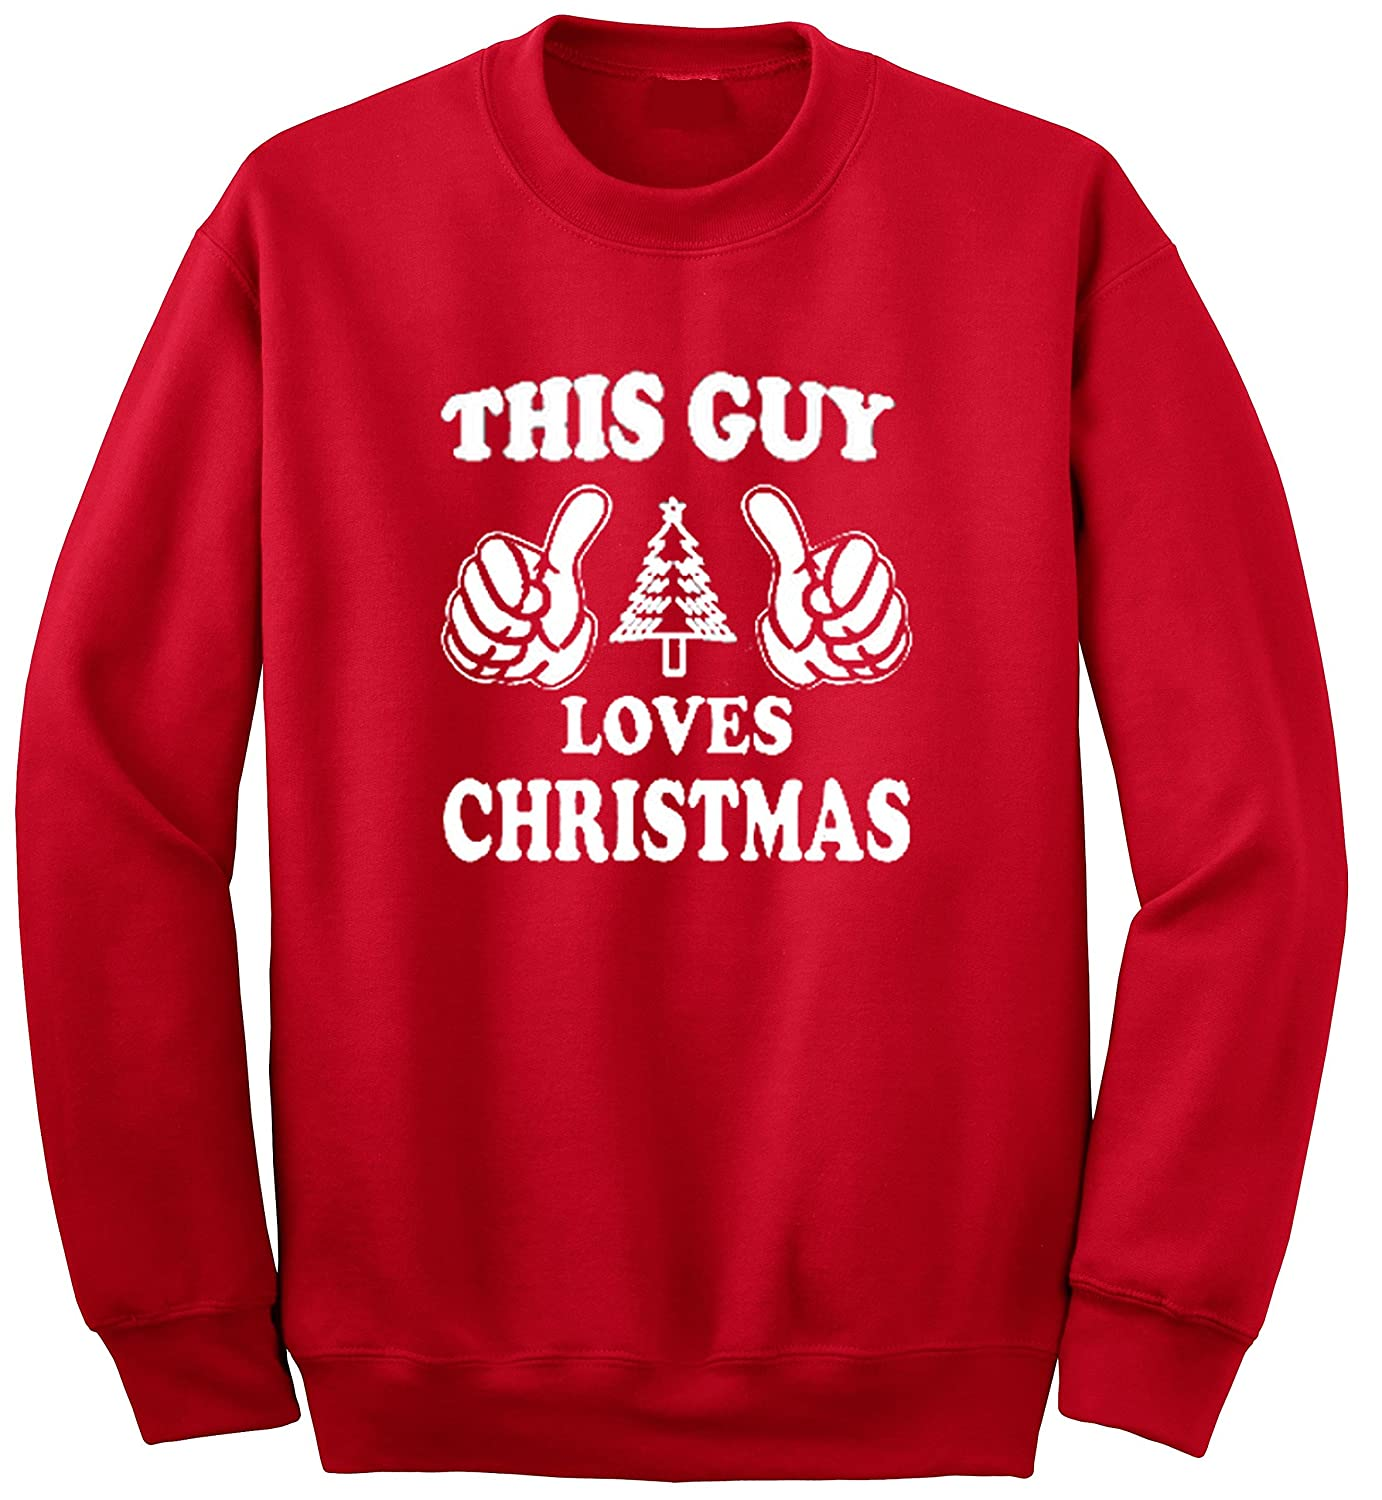 YM Wear Adult This Guy Love Christmas Sweater Crewneck